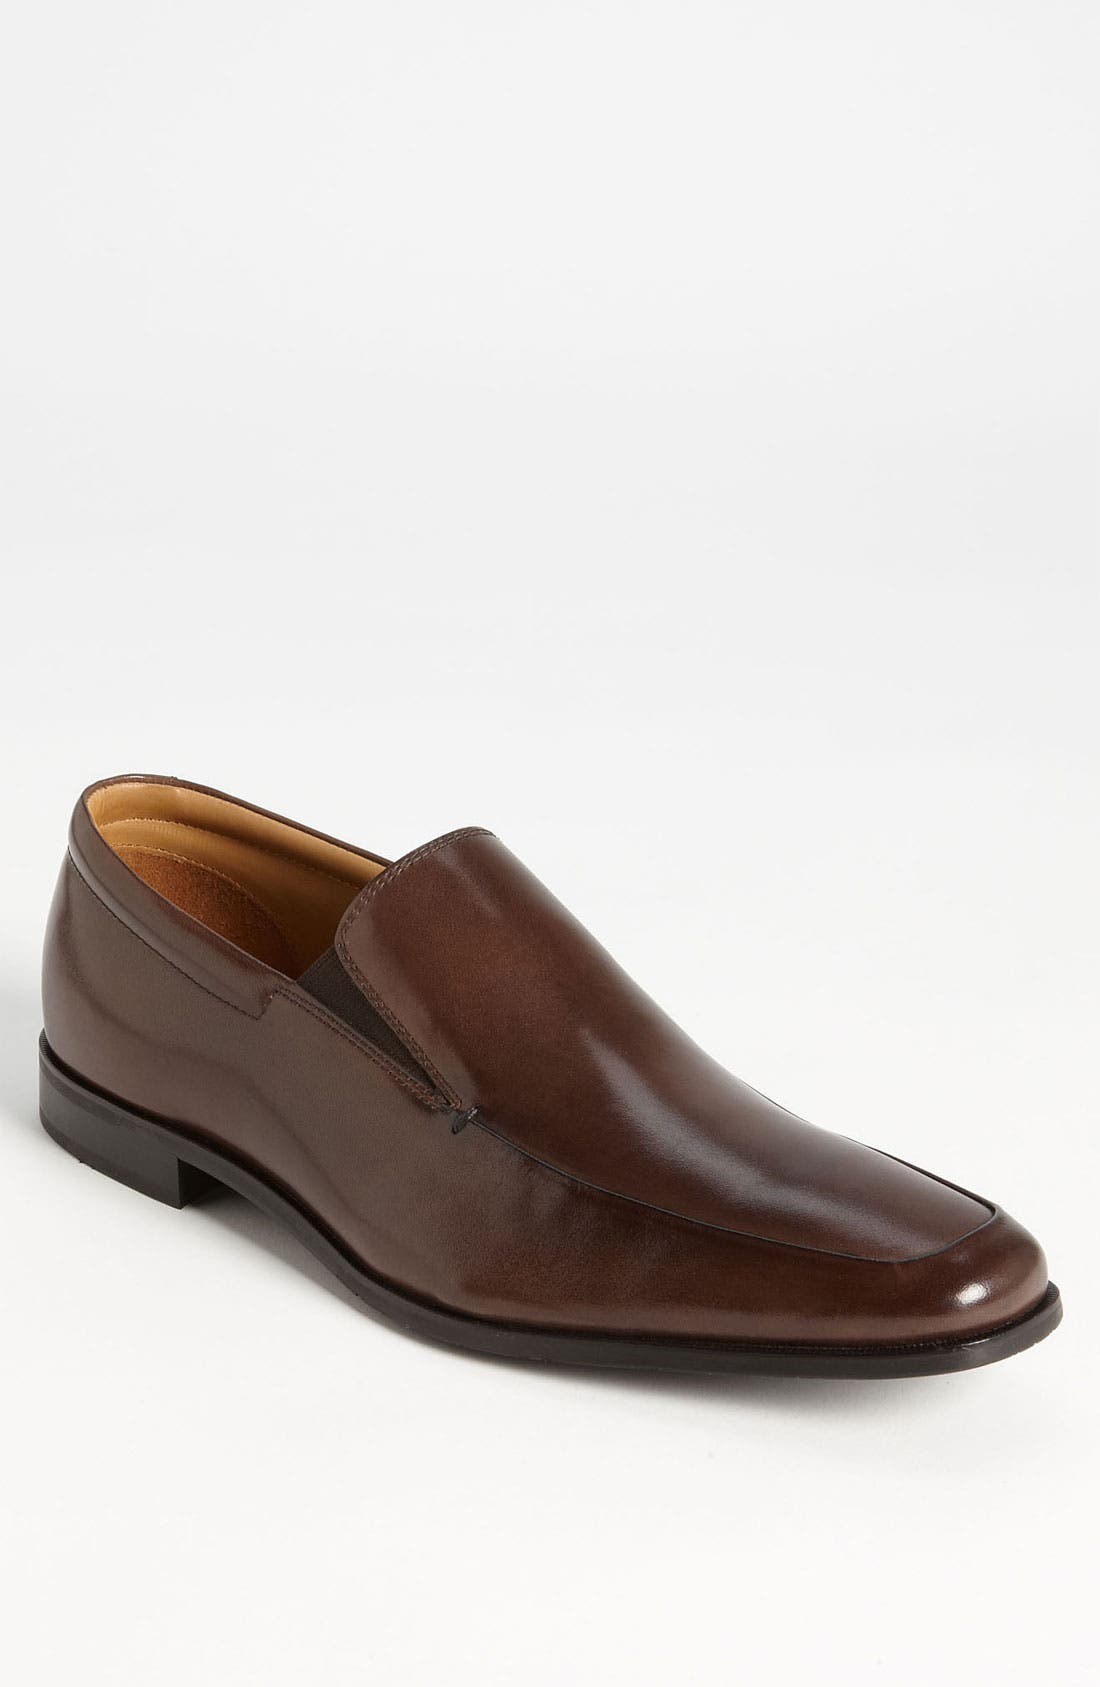 Alternate Image 1 Selected - Gordon Rush 'Elliot' Venetian Loafer